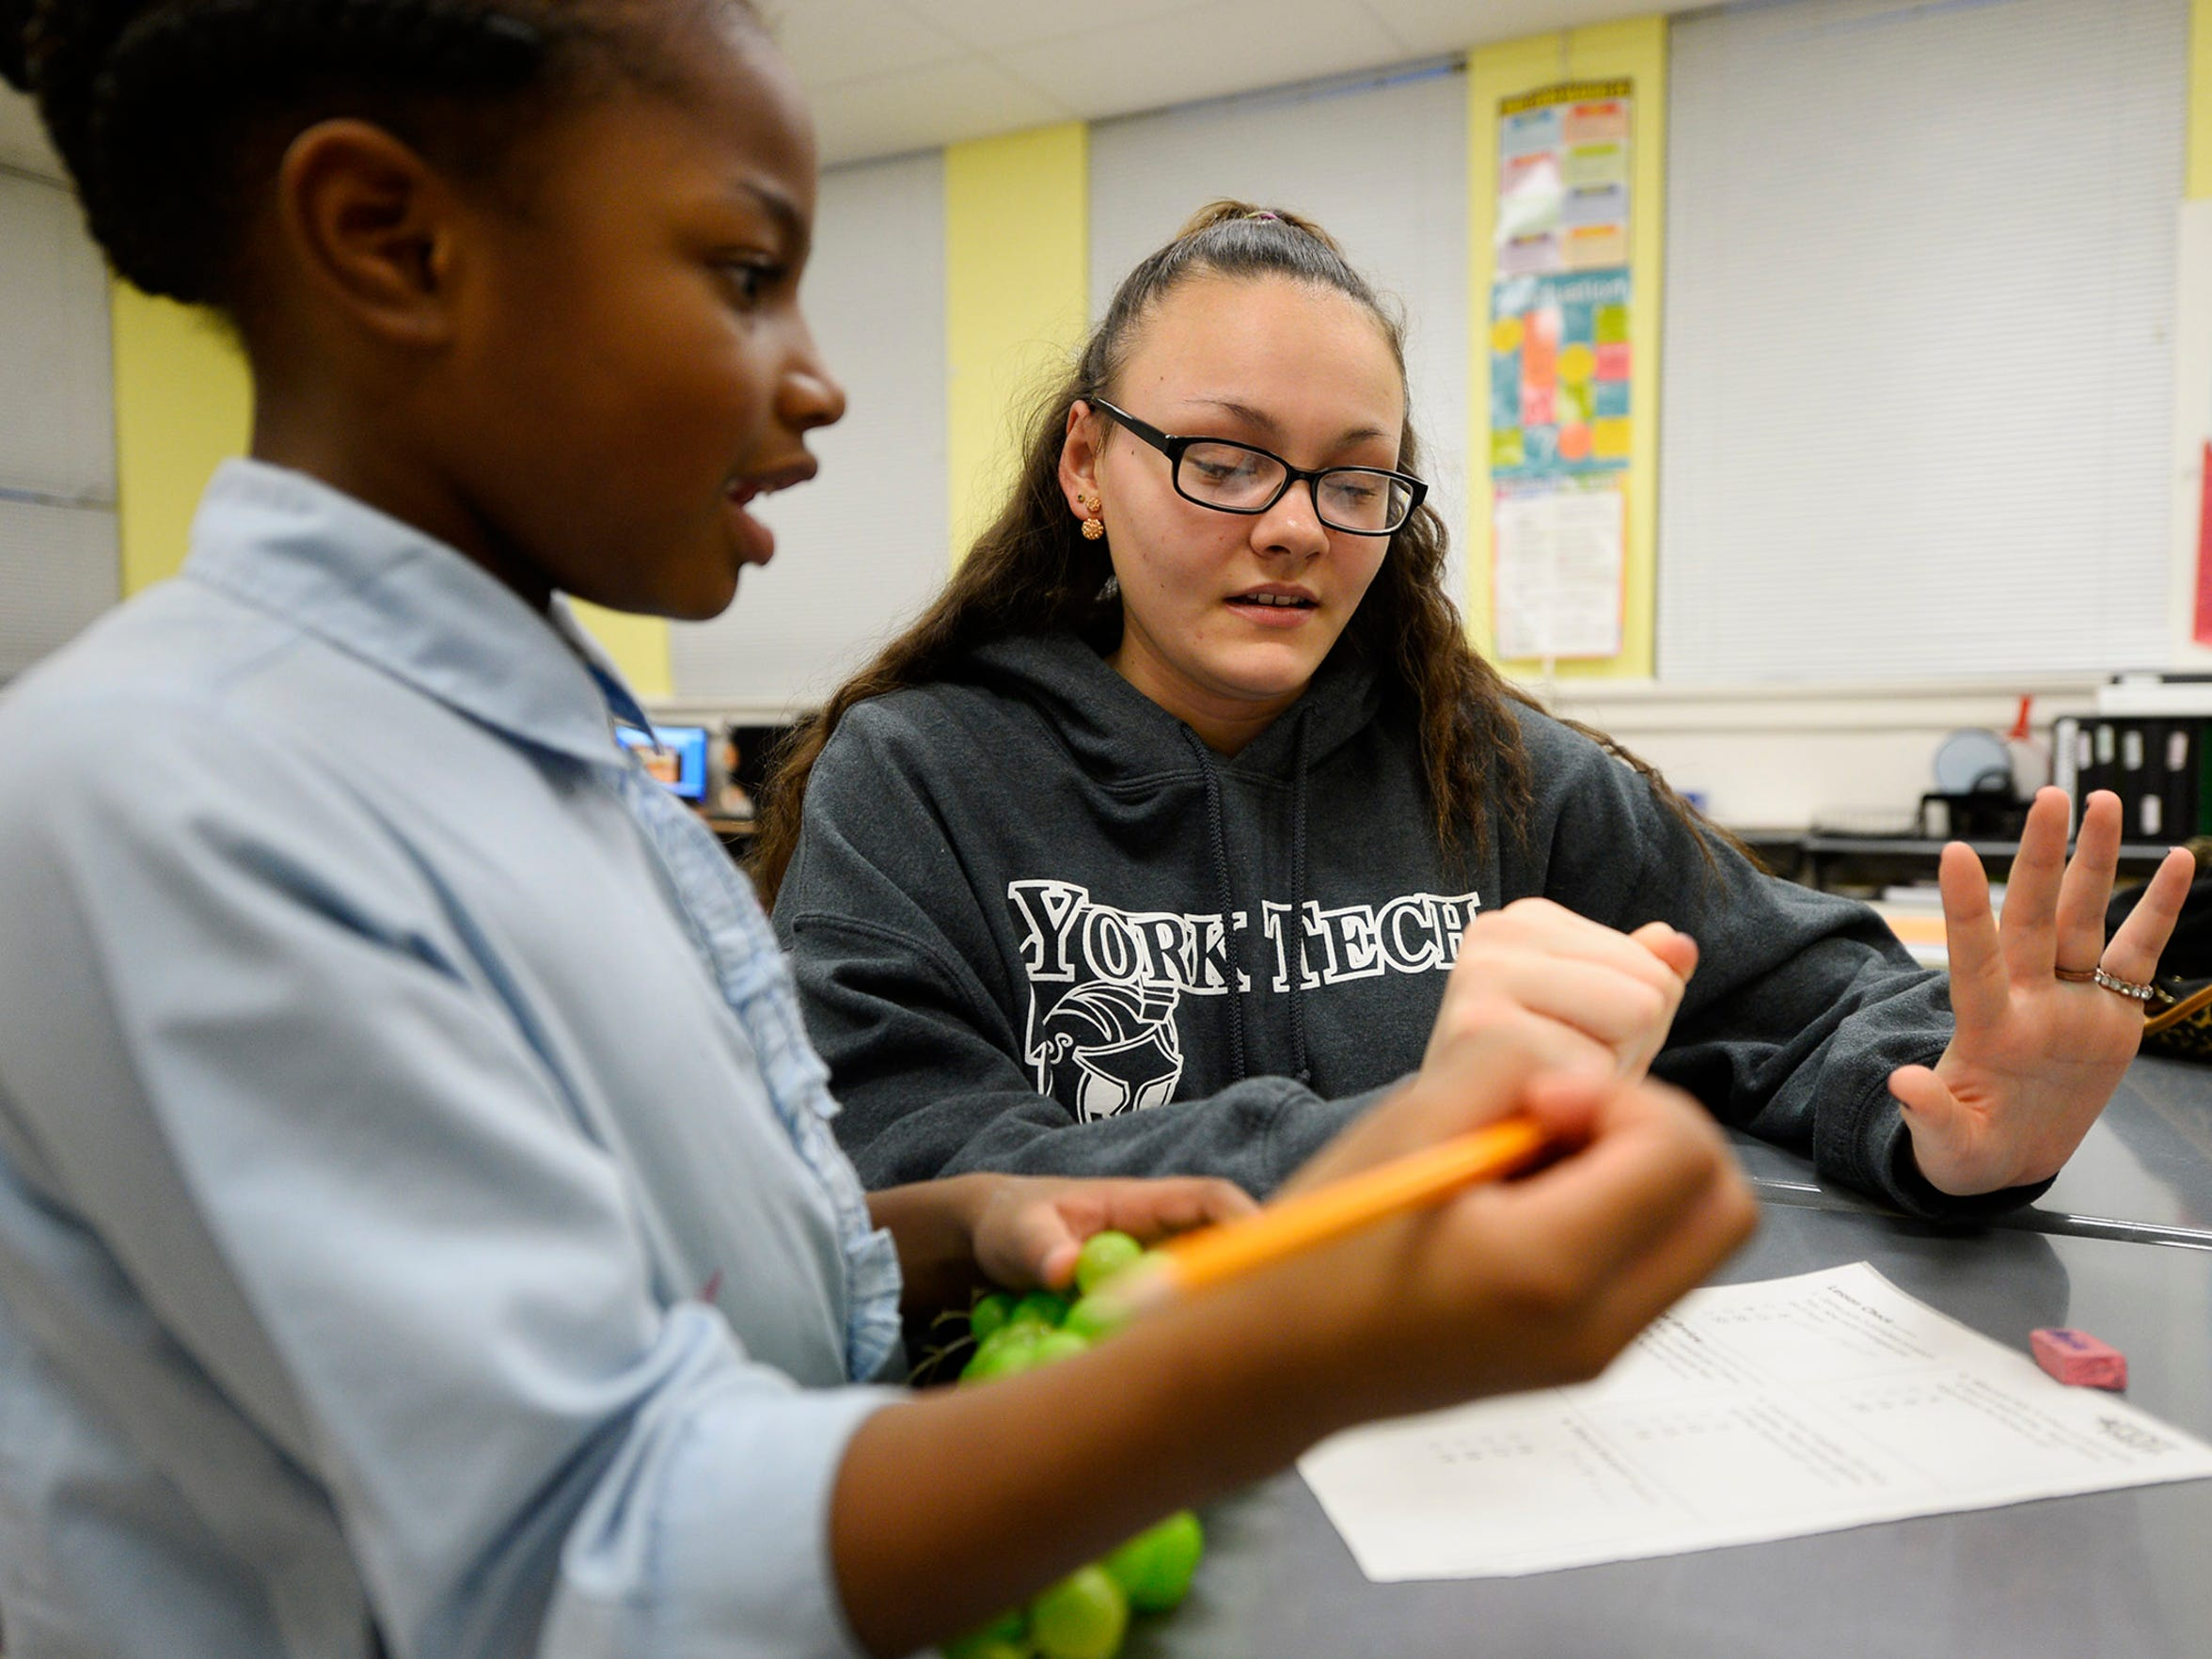 Keiana Rivera, 16, right, helps Aniya Andrews, 7, with her math homework during a YAYA Girls meeting at Helen Thackston Charter School in York earlier this month. Girls spend the first half hour of the meeting doing homework or reading. In the spirit of the sisterhood, the group tries to build, azaleas, ages 12-16, are expected to help the younger girls if they don't have work of their own.